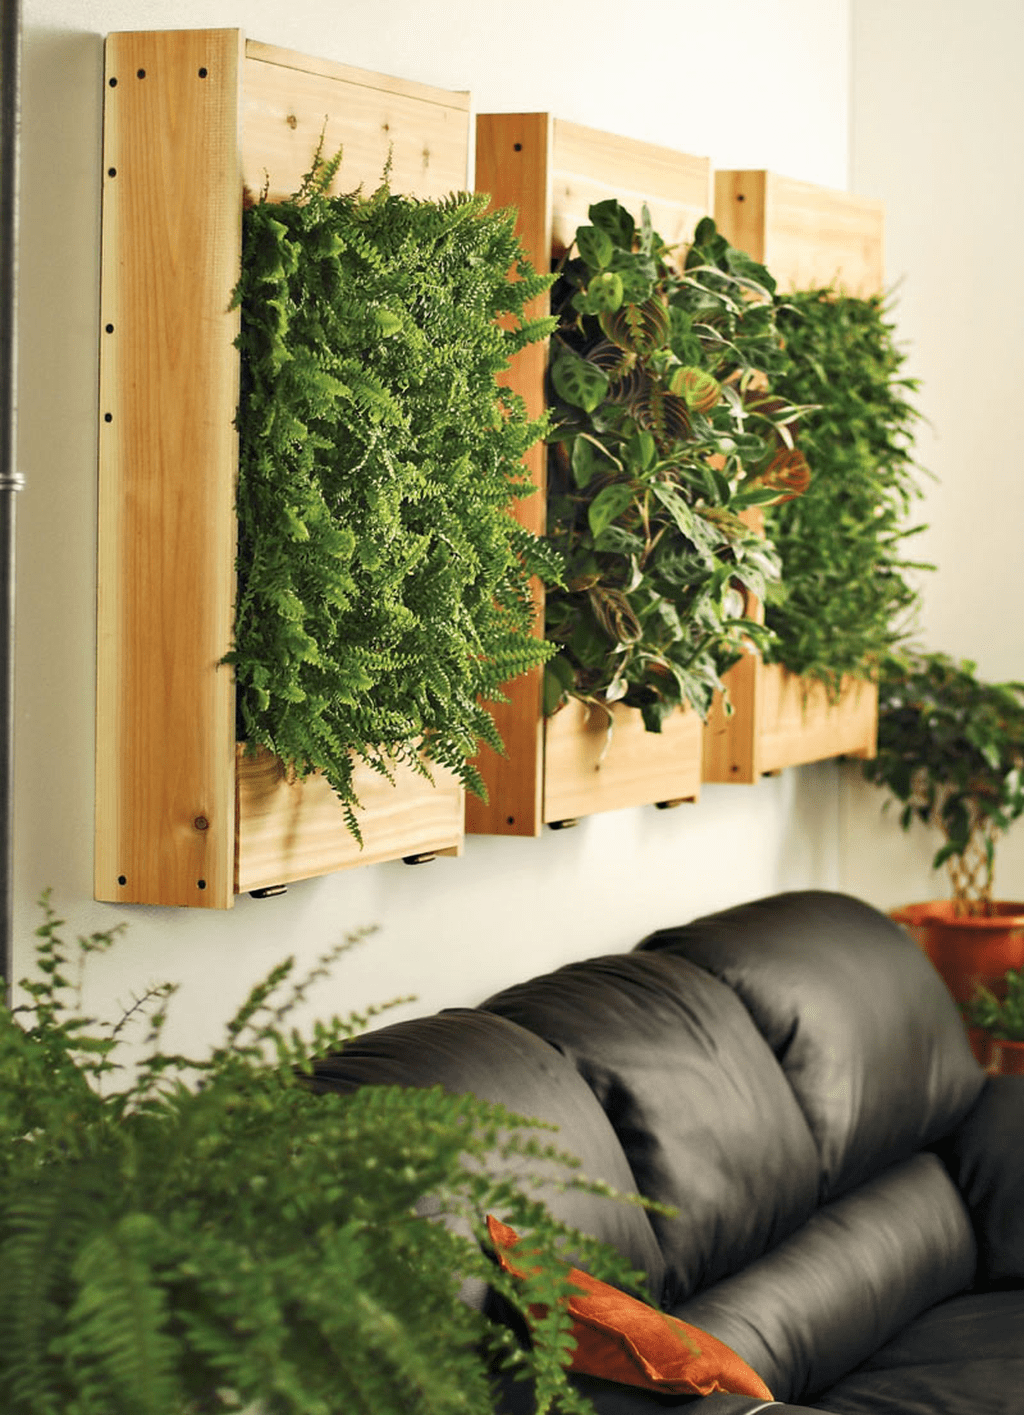 Amazing Living Wall Indoor Decoration Ideas 11